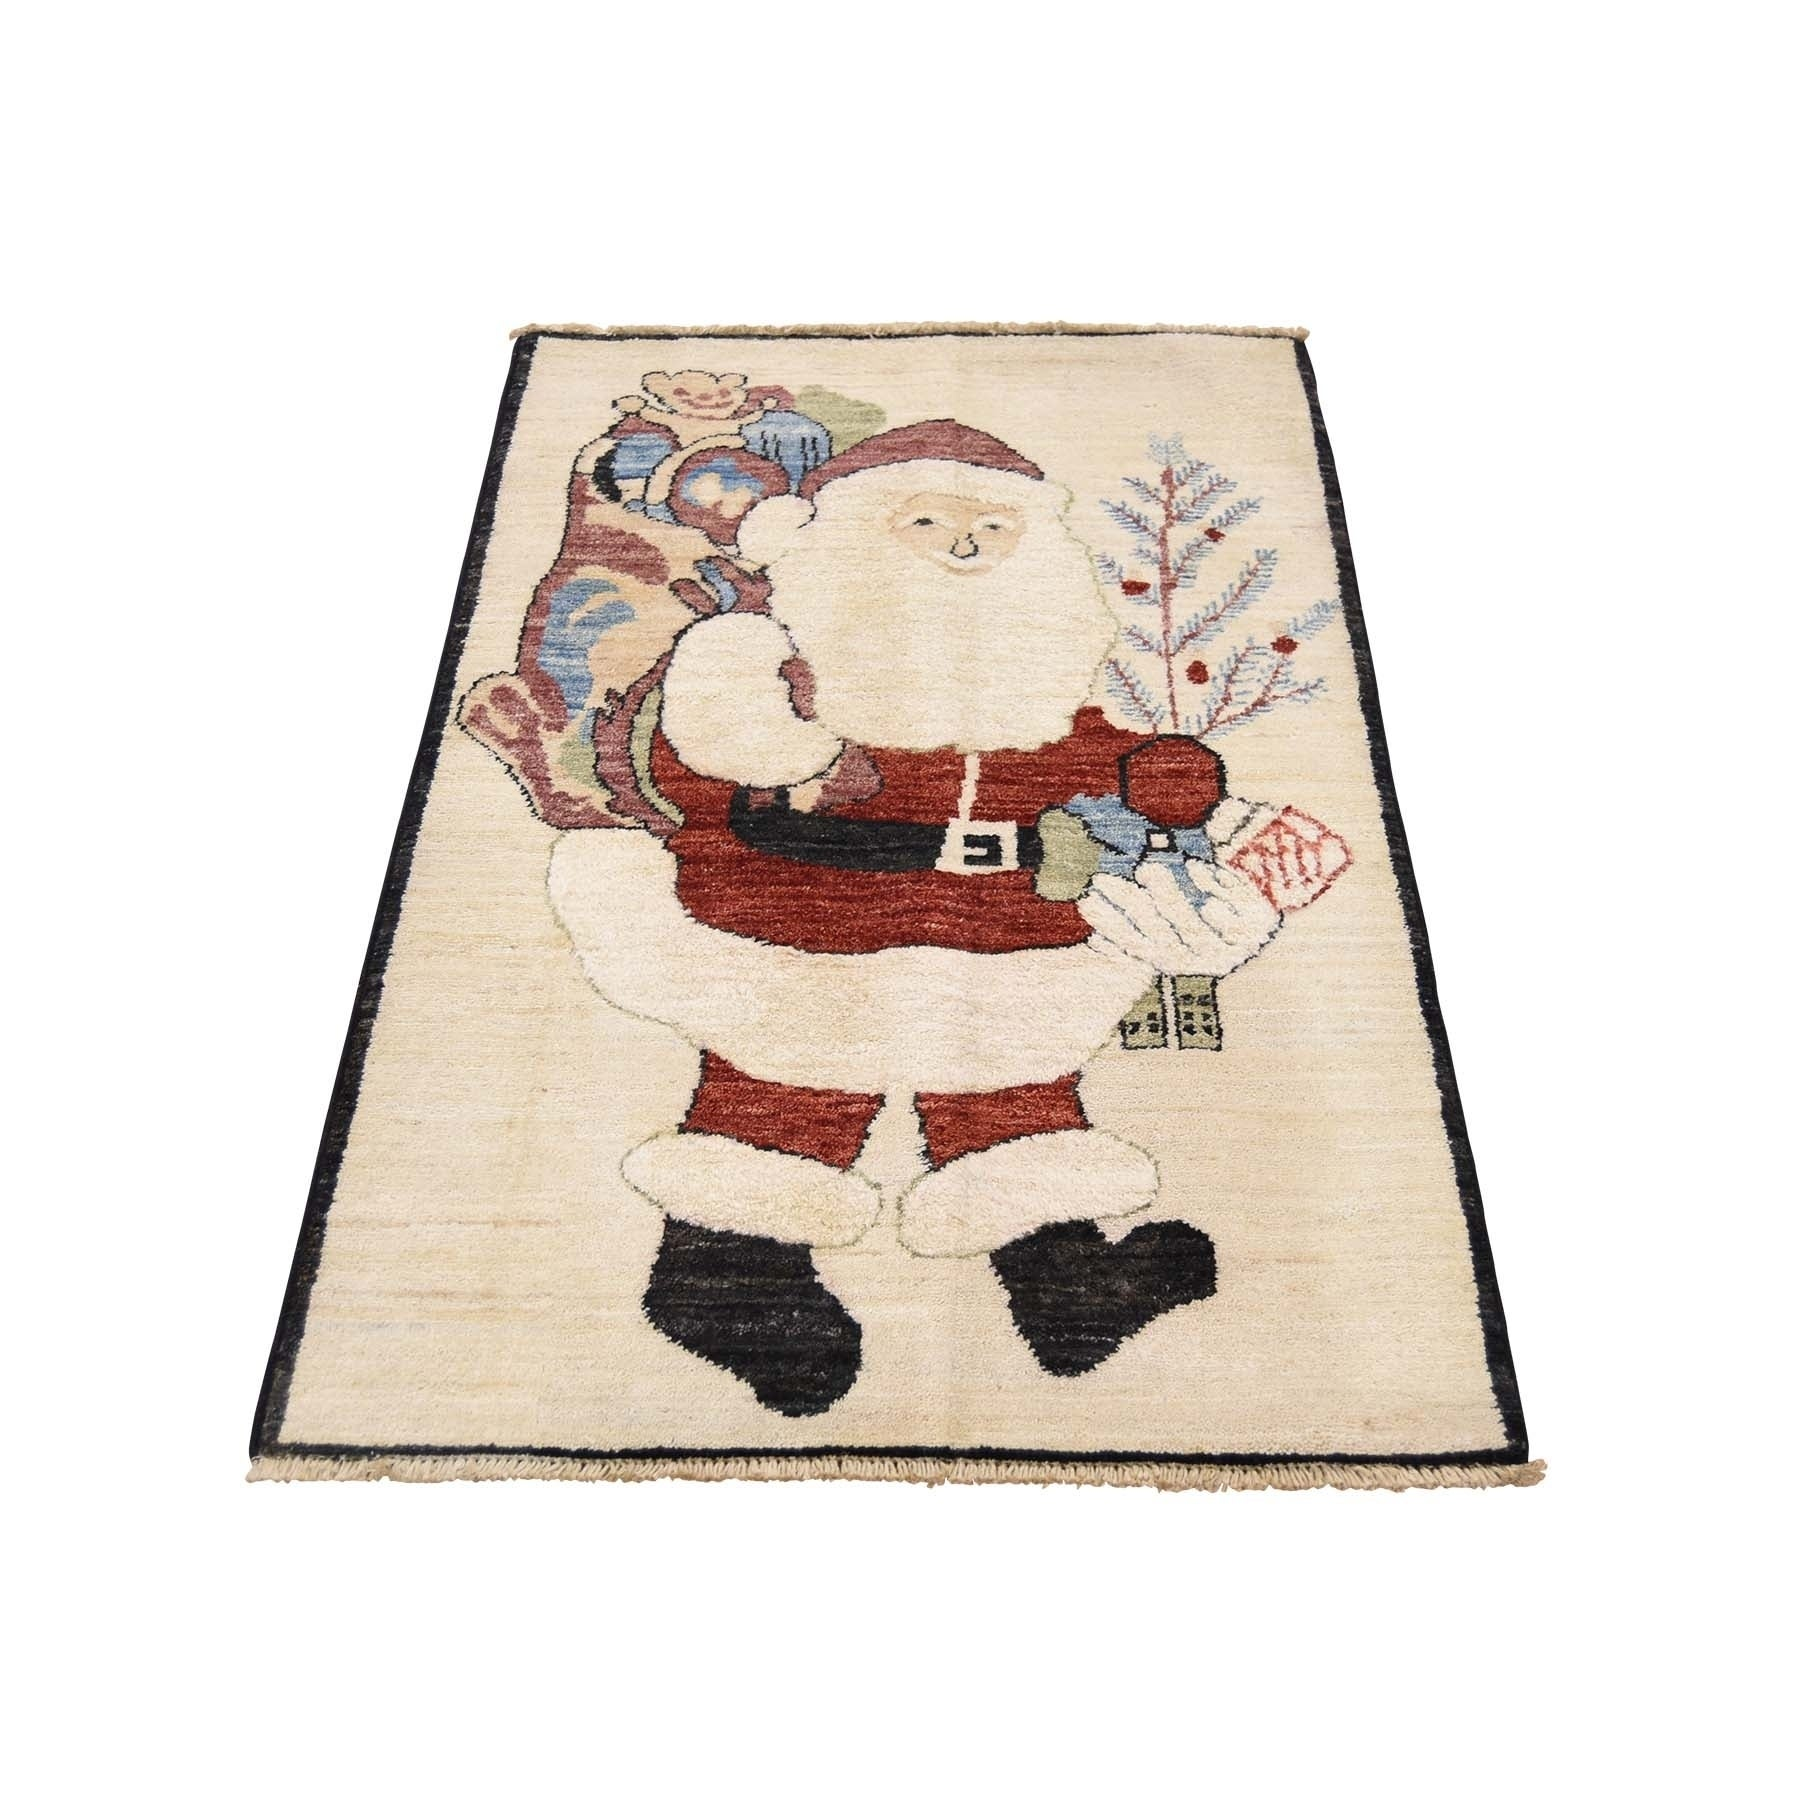 Shahbanu Rugs Pure Wool Peshawar Quality Hand Knotted Santa Claus Rug 2 3 X 3 10 On Sale Overstock 20632598